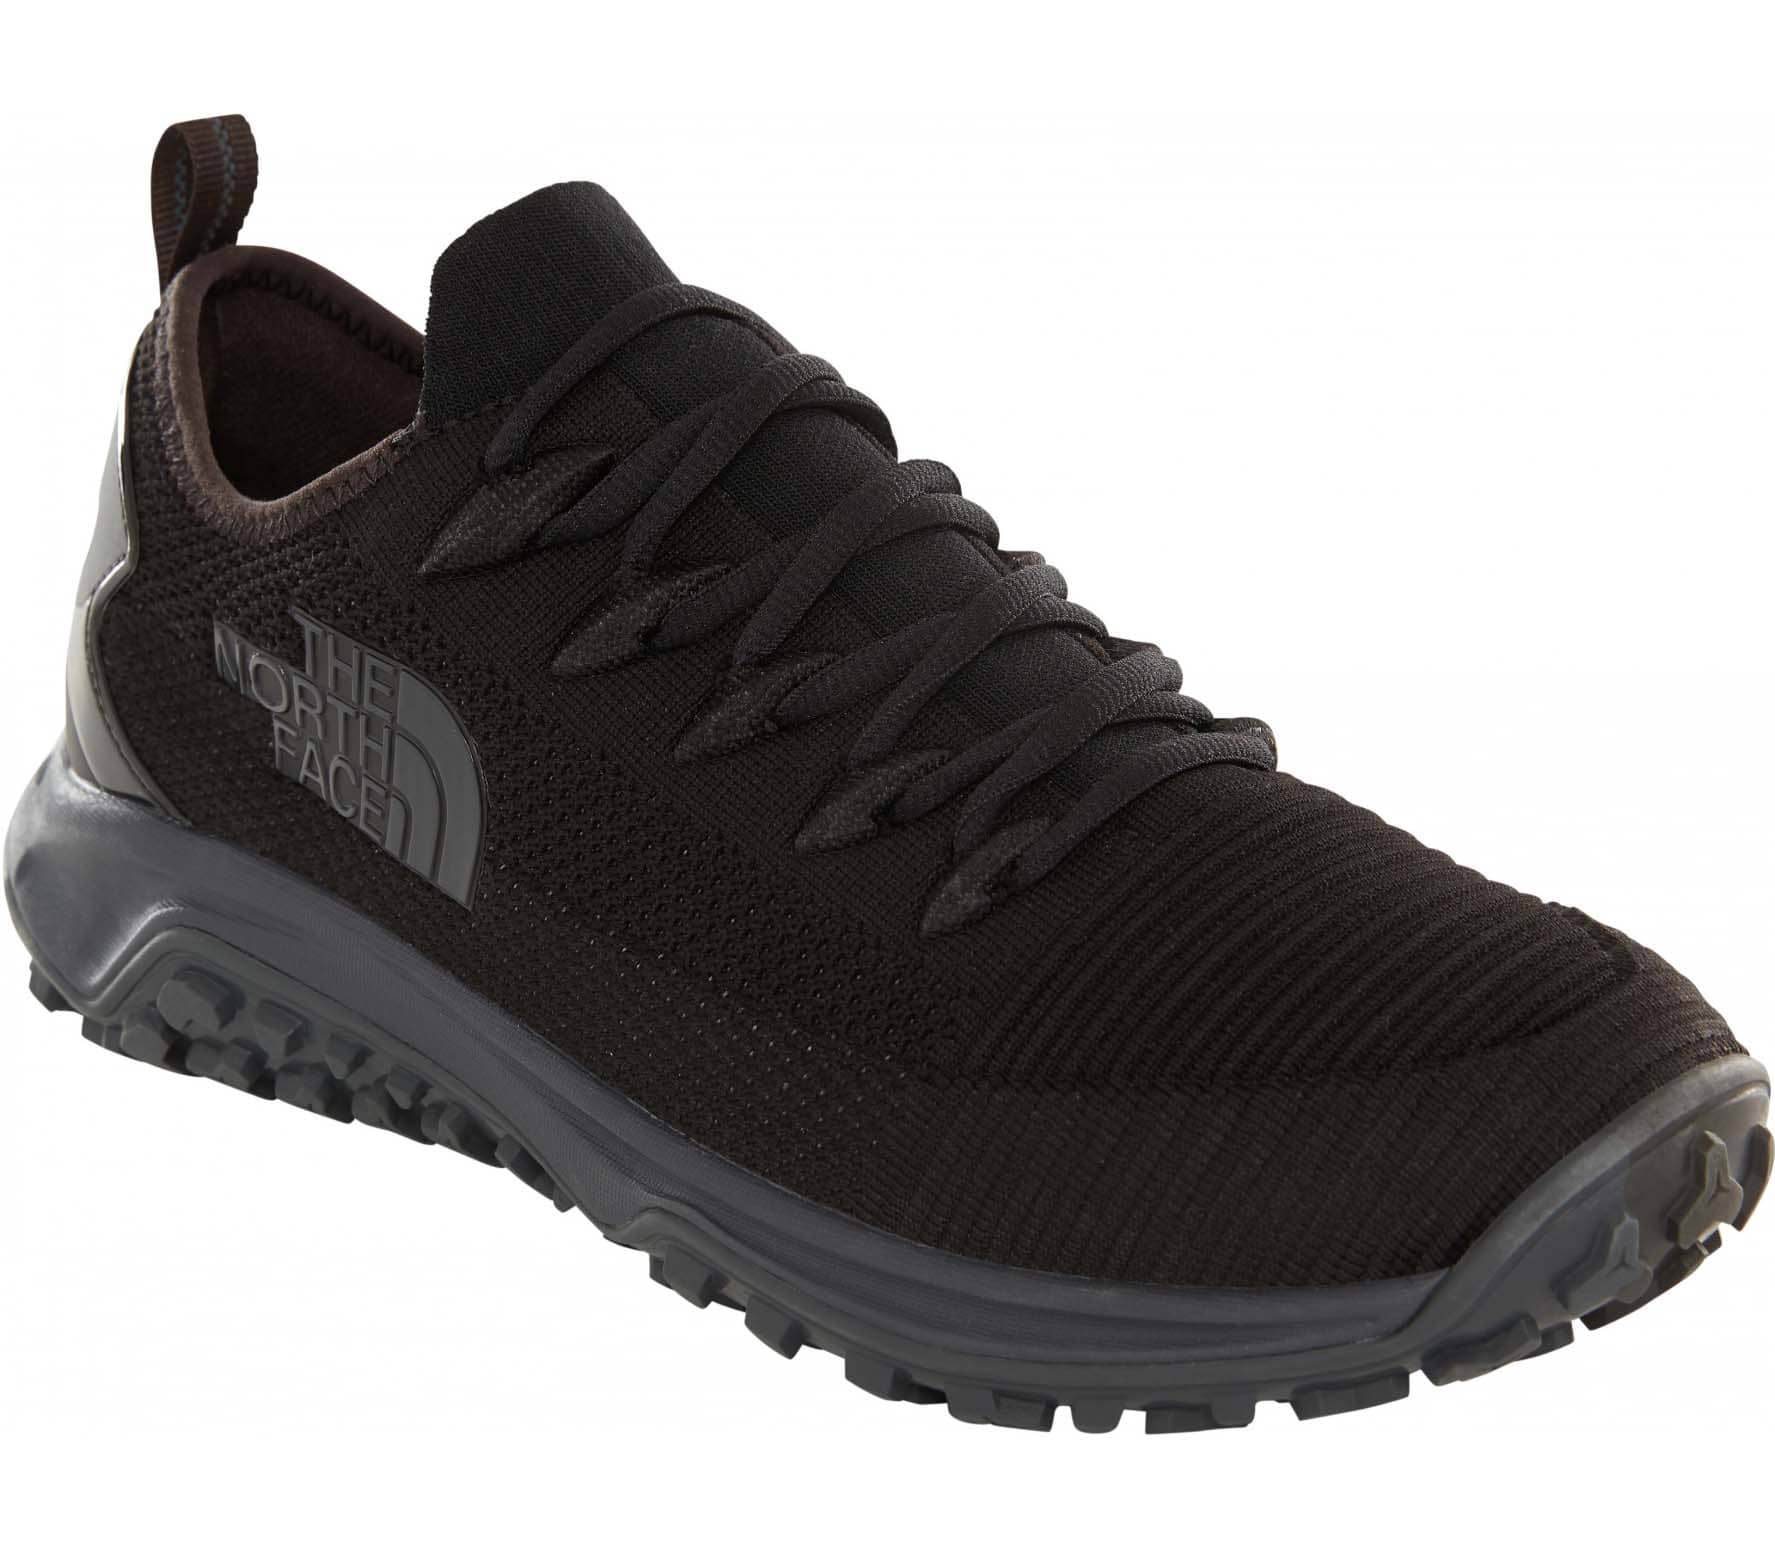 The North Face - TRUXEL Herrs Wanderschuh black - 45,5